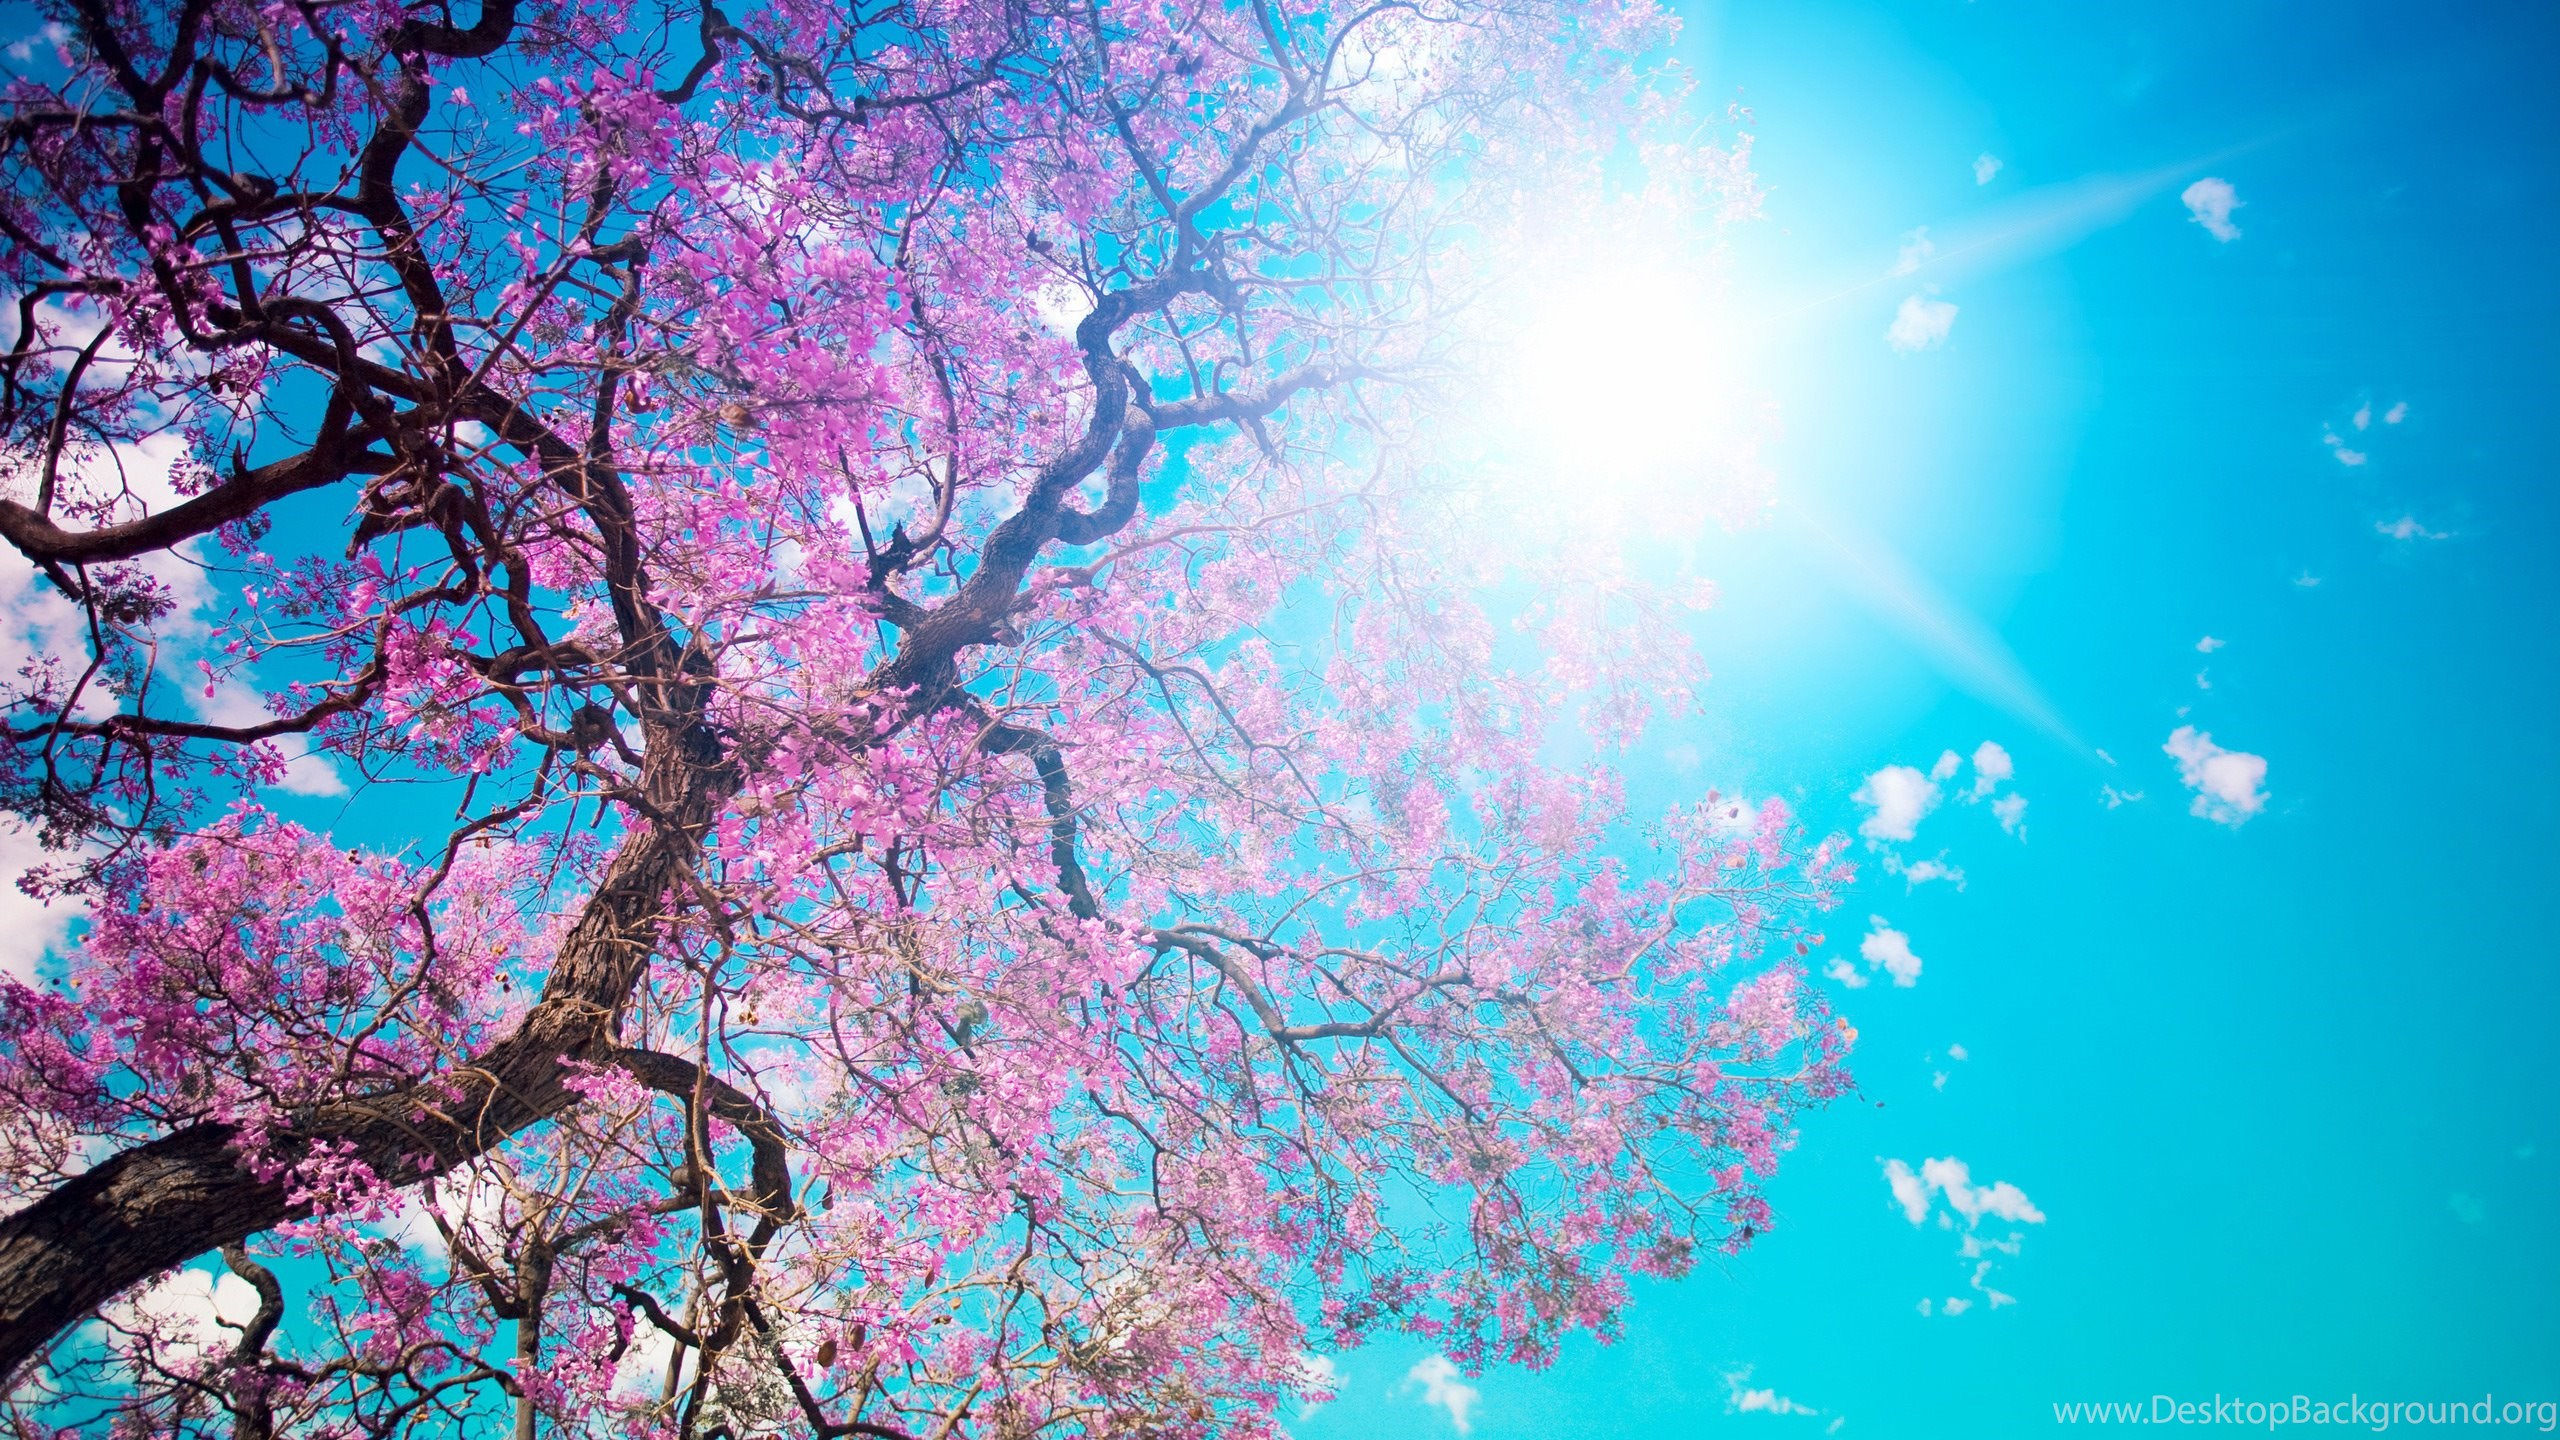 Wallpapers Sakura Pink Flowers Blue Sky 2560x1440 Desktop Background